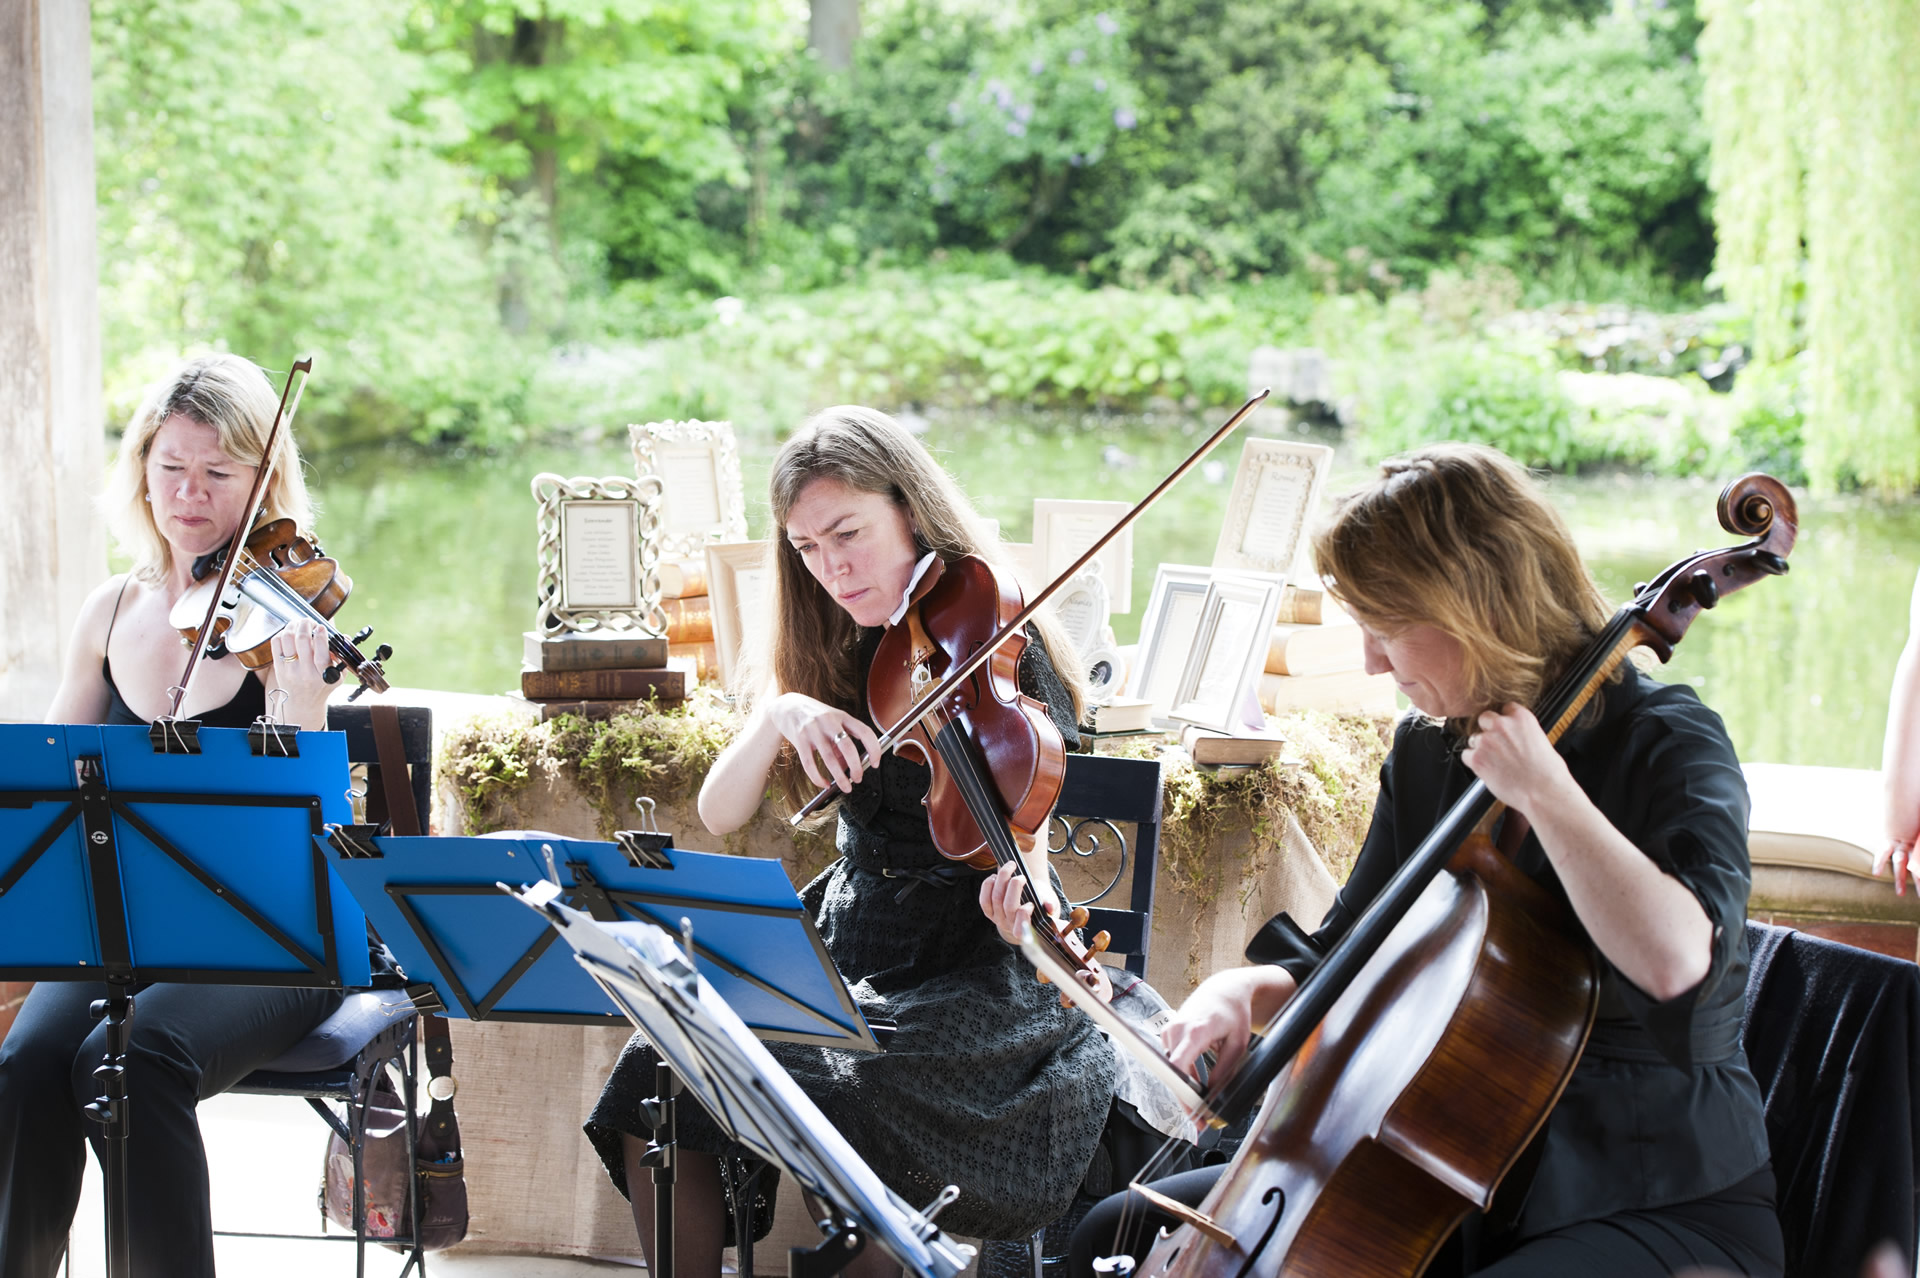 Manor House Music - Wedding string quartet for all types of occasions, including birthday parties, wedding anniversaries and garden parties